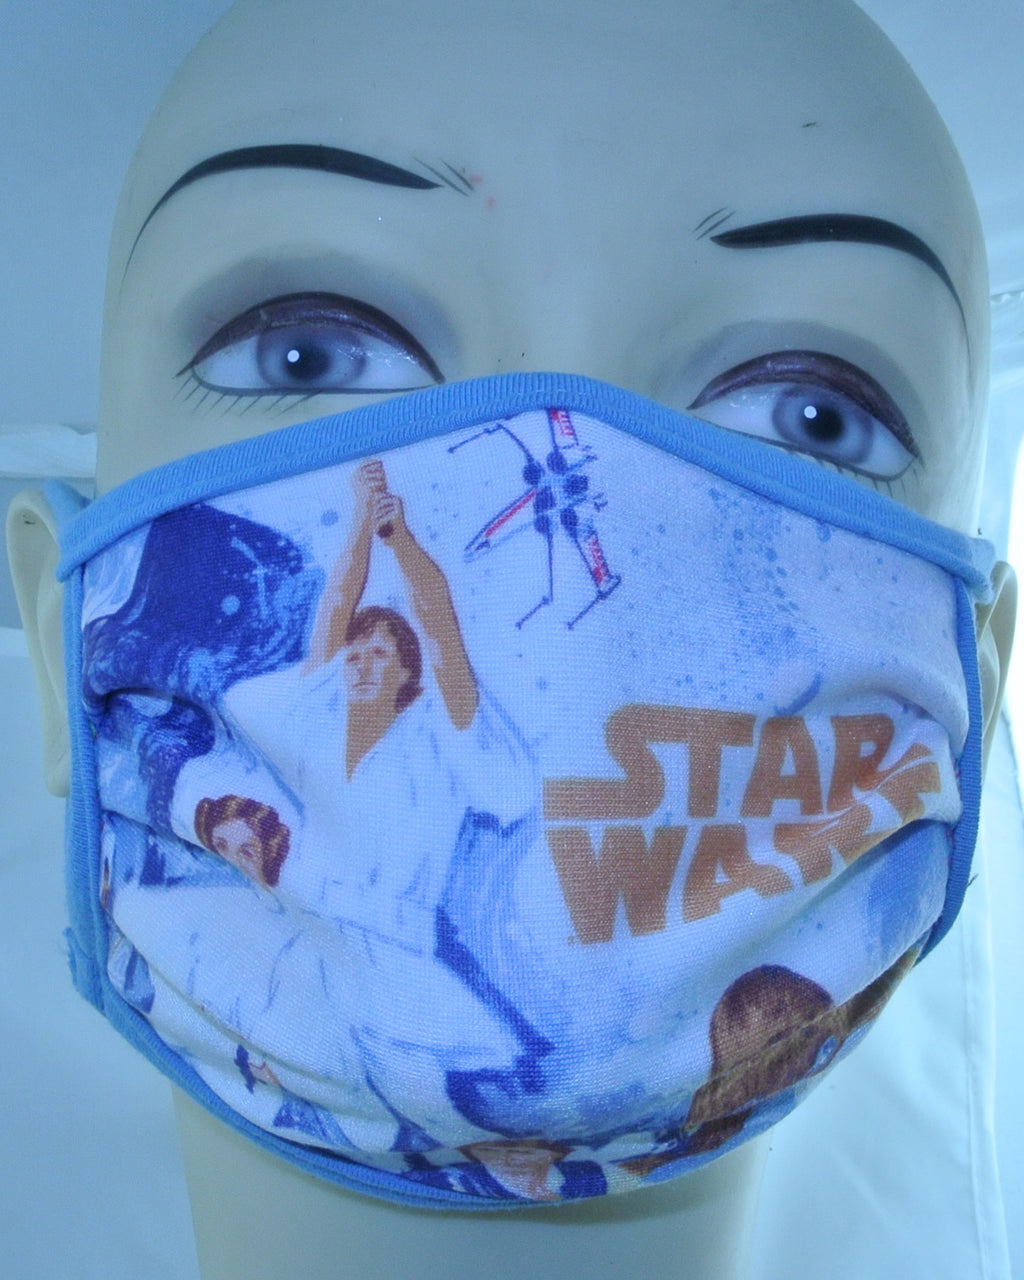 STAR WAS AUTHENTIC SHOP DISNEY STAR WARS FACE MASK BRAND NEW VINTAGE POSTER PRINCESS LEIA HAN SOLO LUKE SKYWALKER CHEWBACCA LIGHT BLUE WASHABLE REUSABLE REUSEABLE CLOTH - MASS PRODUCED